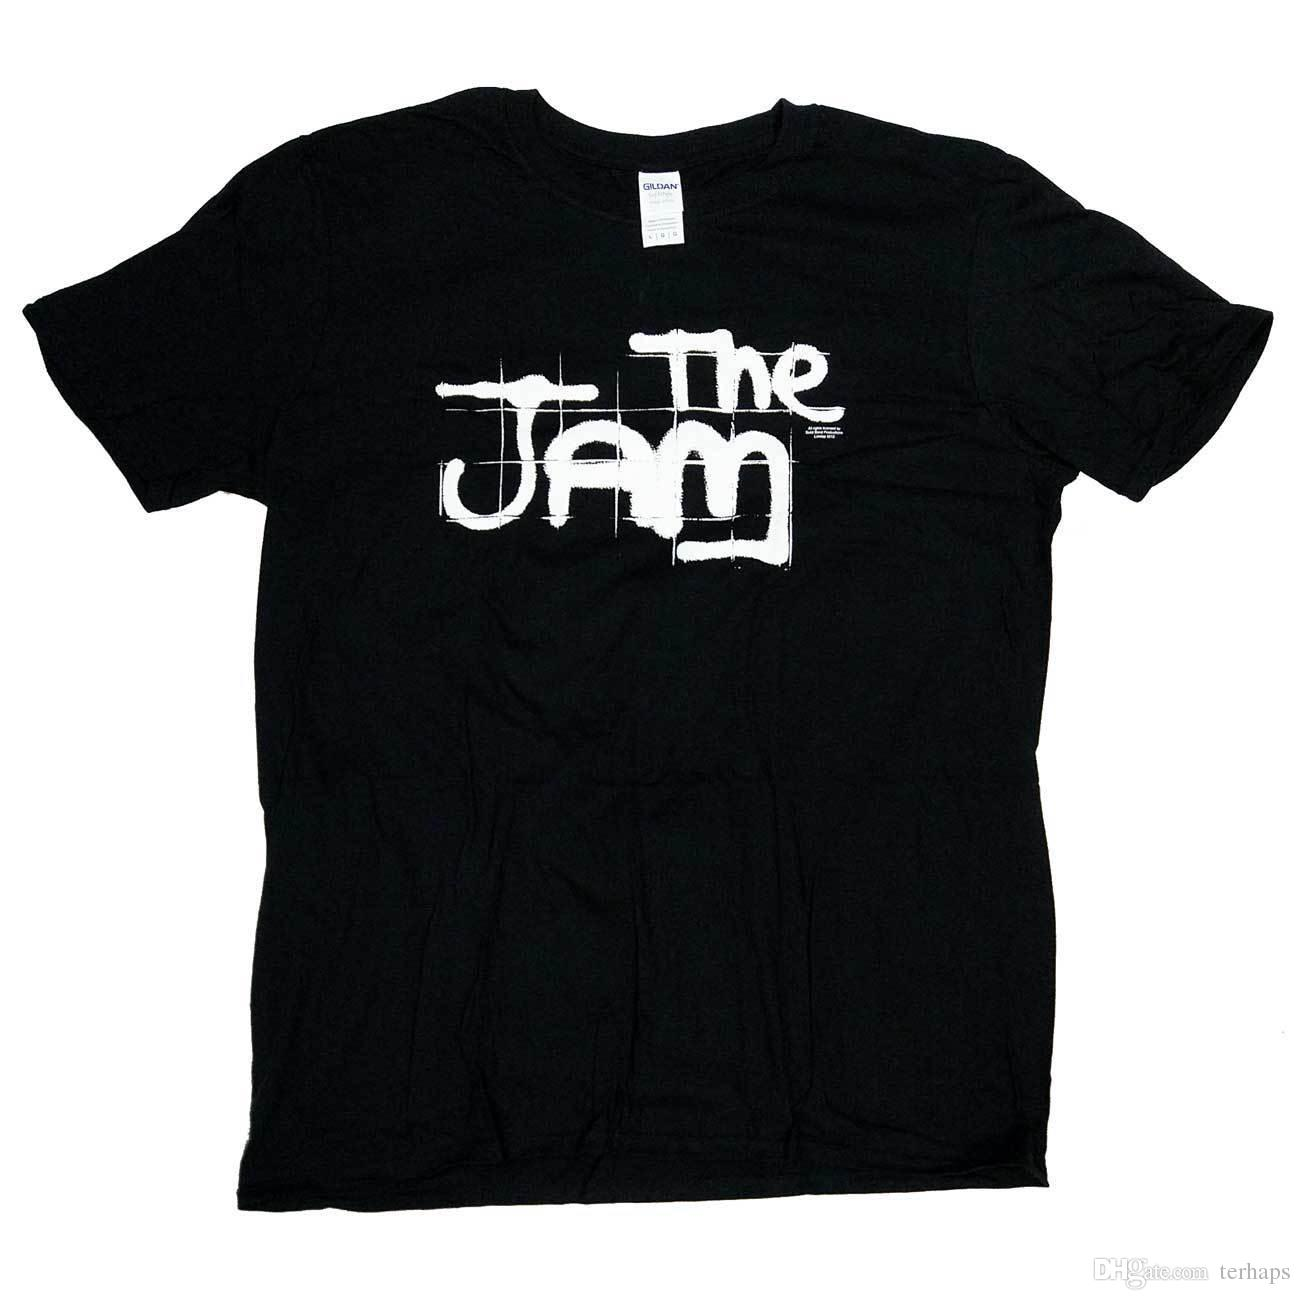 The Jam T Shirt In The City Spray Paint Logo 100 Official Paul